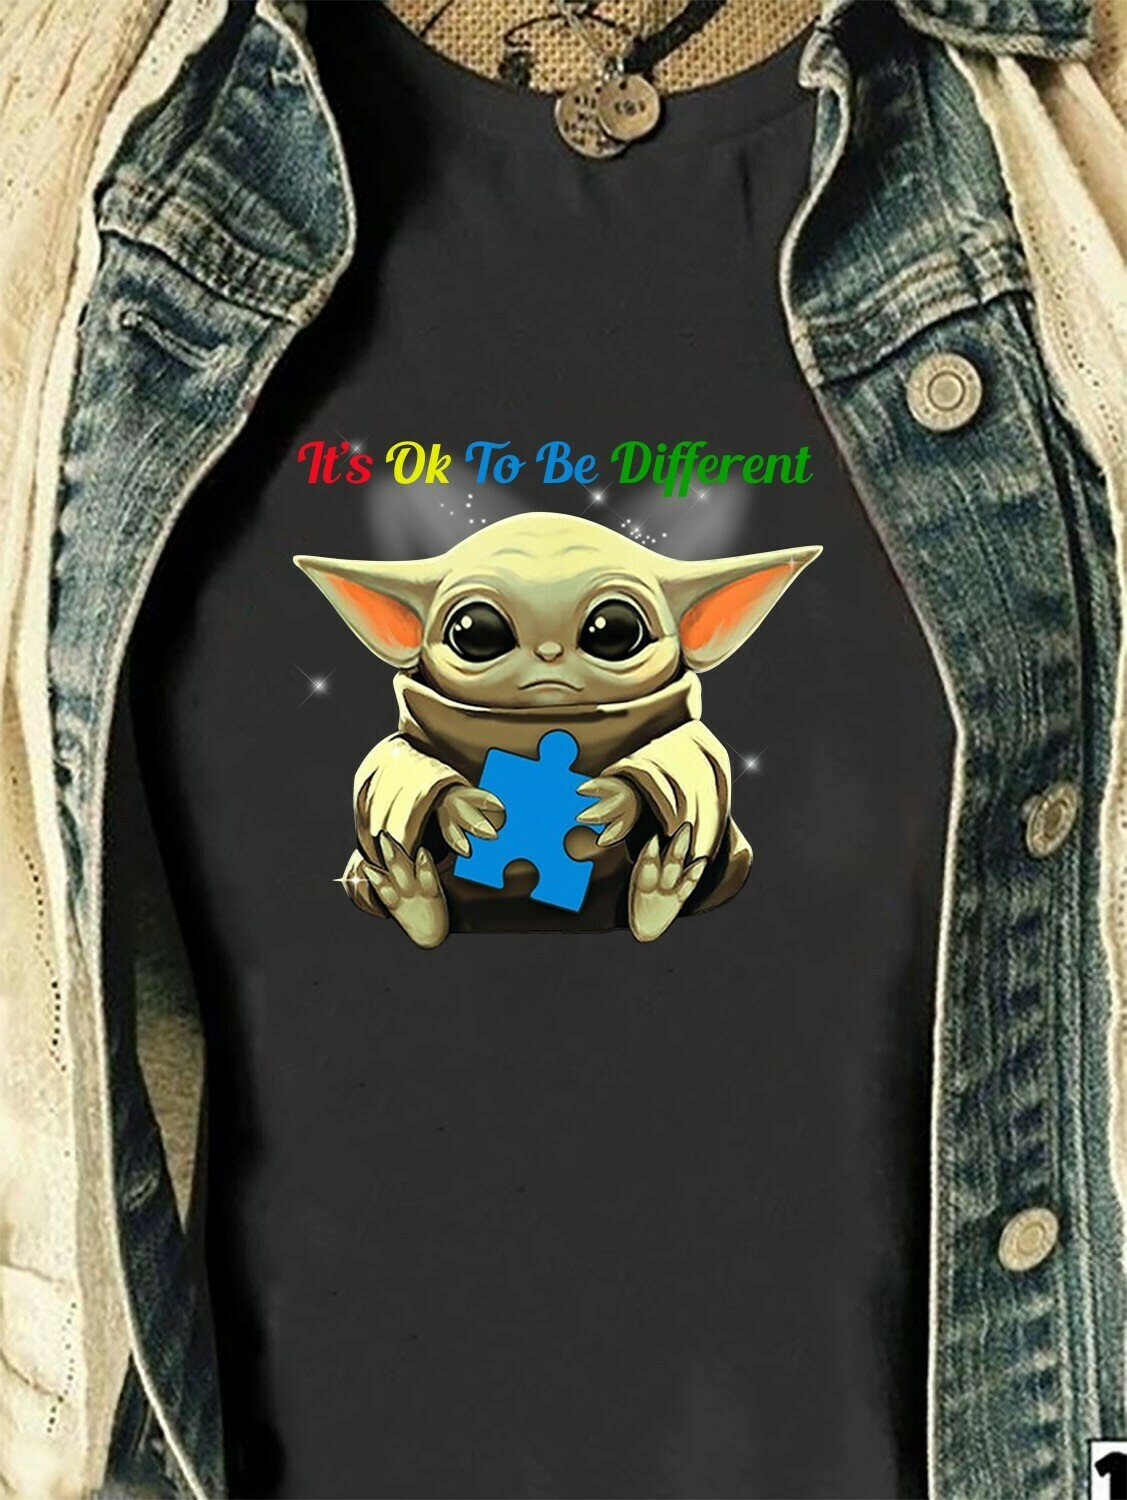 Star Wars Yoda,Baby Yoda It's Ok To Be Different Baby Yoda Hug Cancer Awareness Hope for A Cure,Autism Awareness Gifts T shirt Long Sleeve Sweatshirt Hoodie Jolly Family Gifts